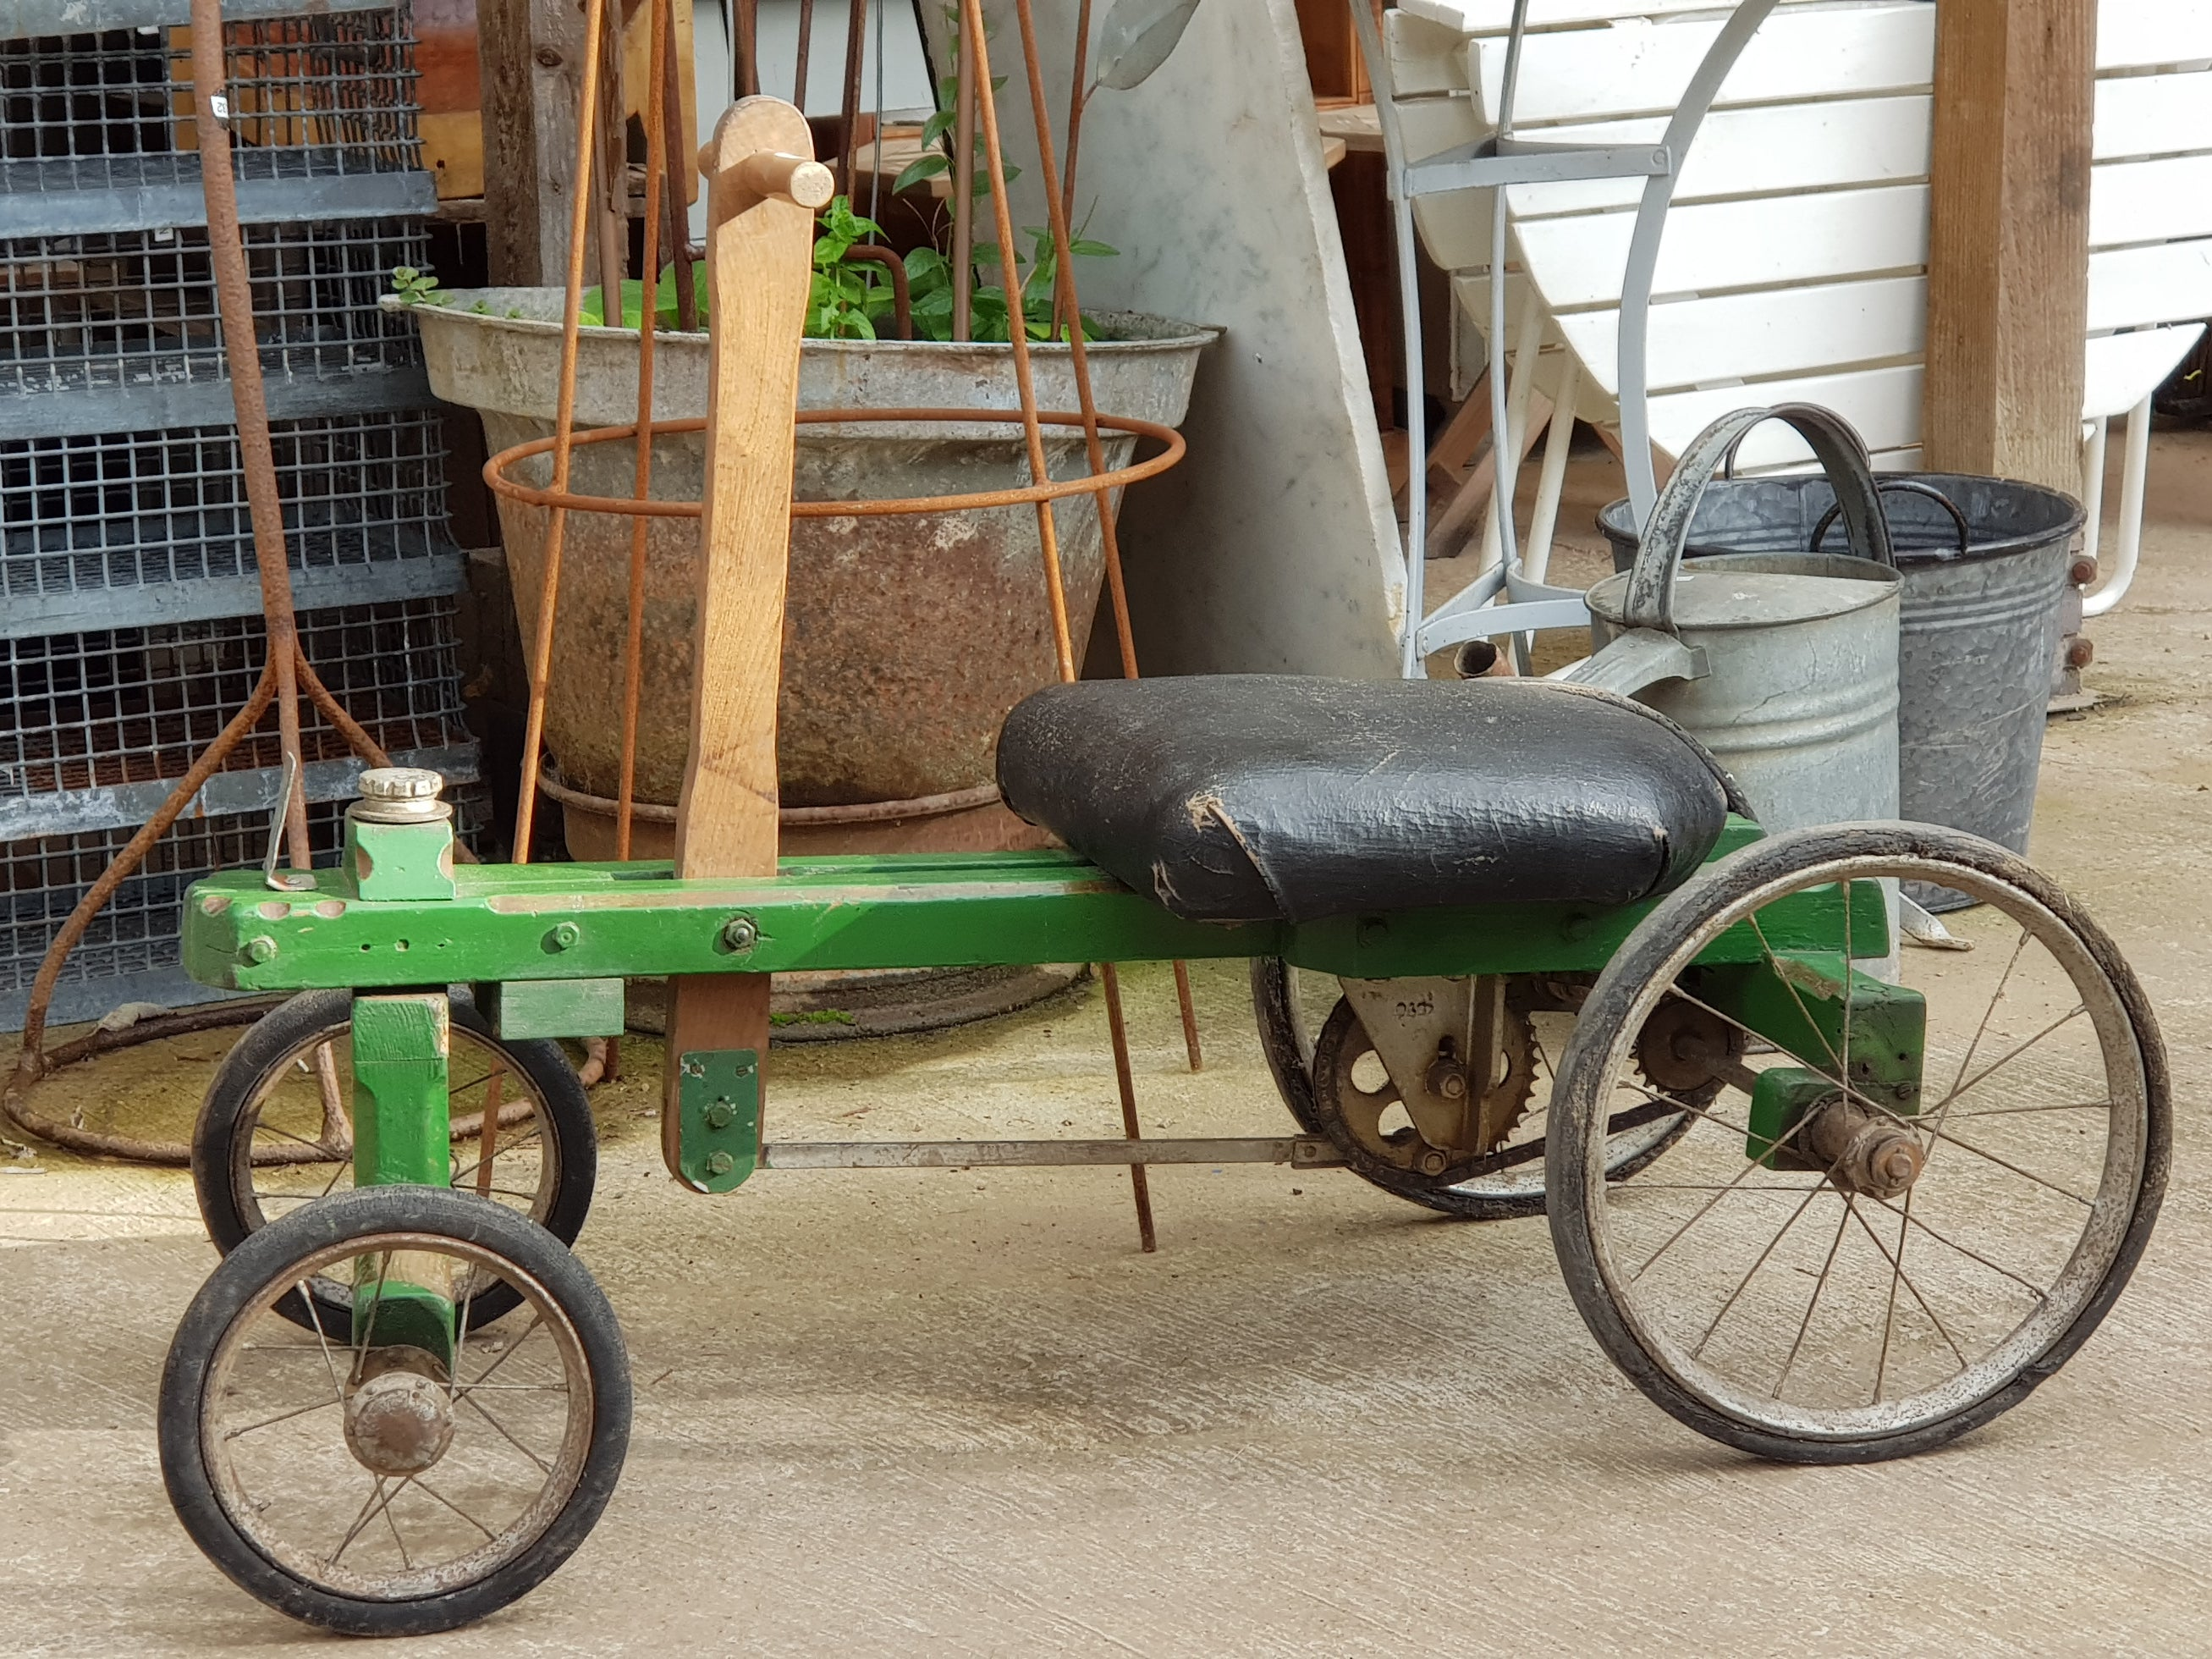 Cool hand crank go-cart